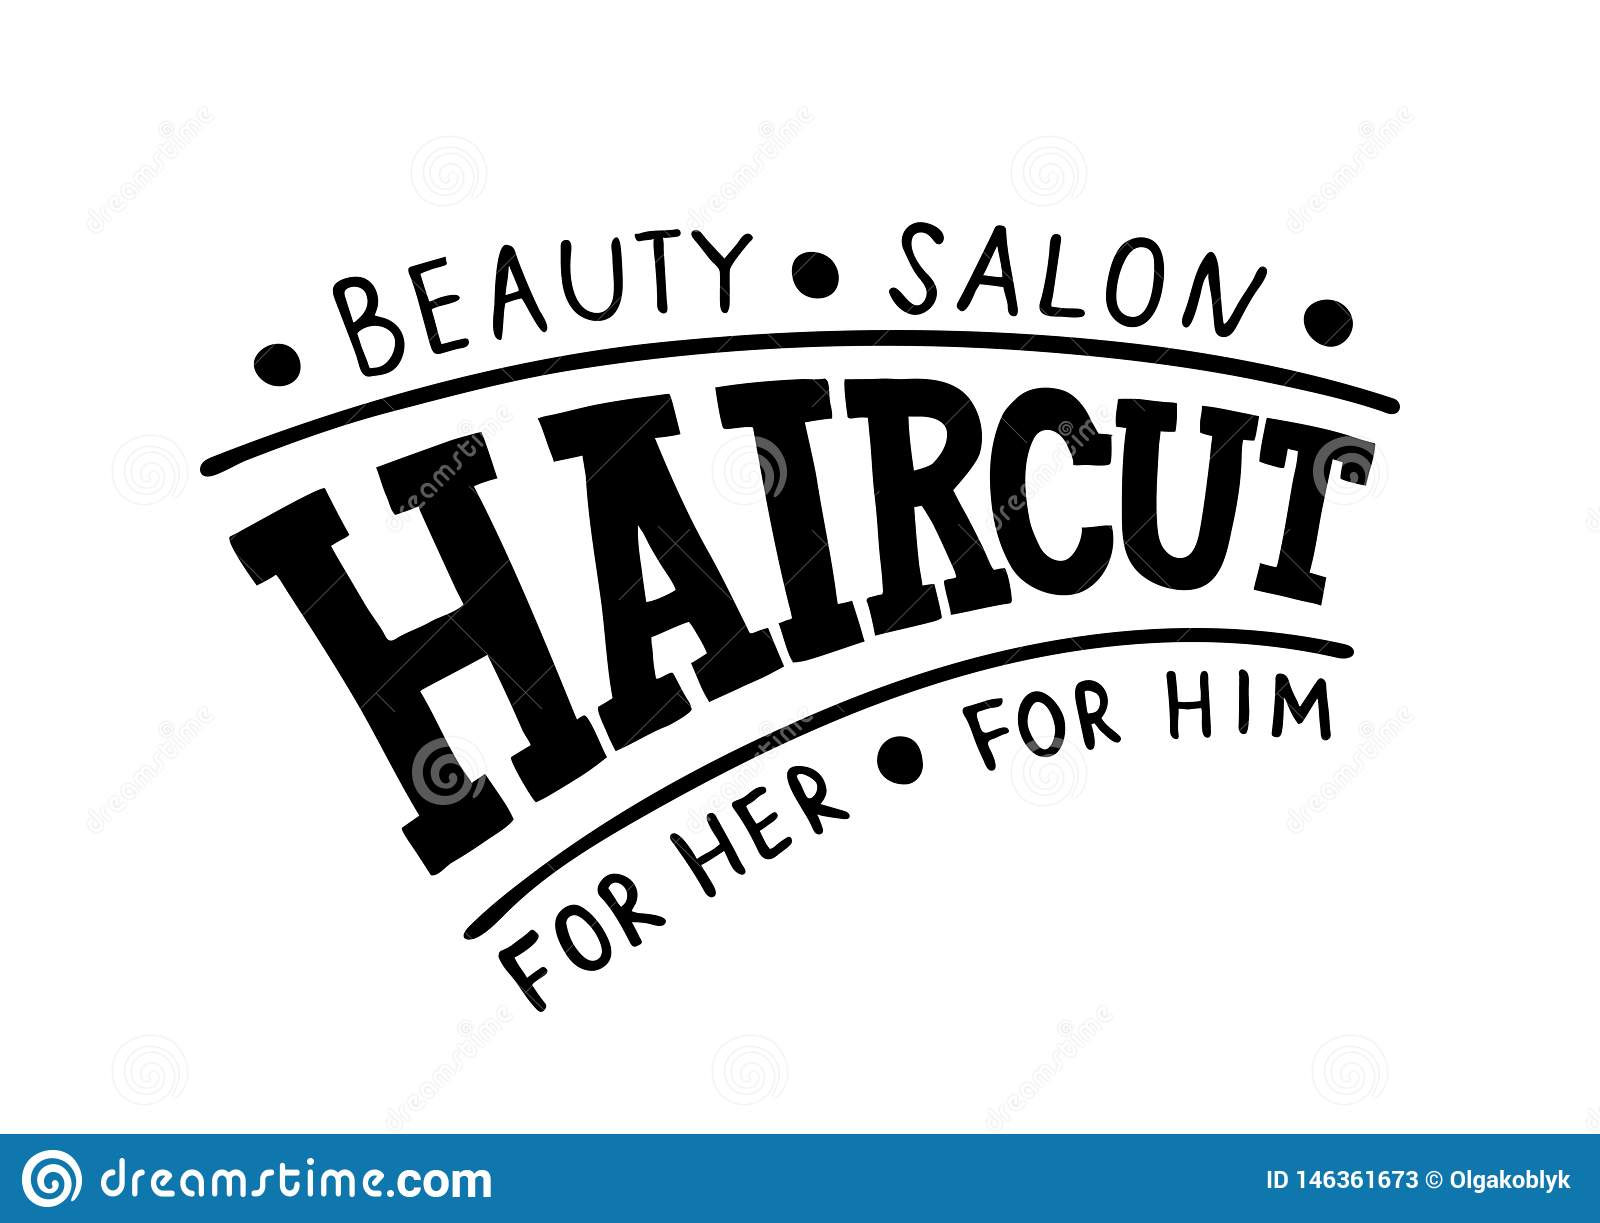 Haircut Beauty Salon For Her For Him Hand Drawn Logo Signboard Template For Hair And Beauty Salon Stock Vector Illustration Of Hairdresser Girl 146361673